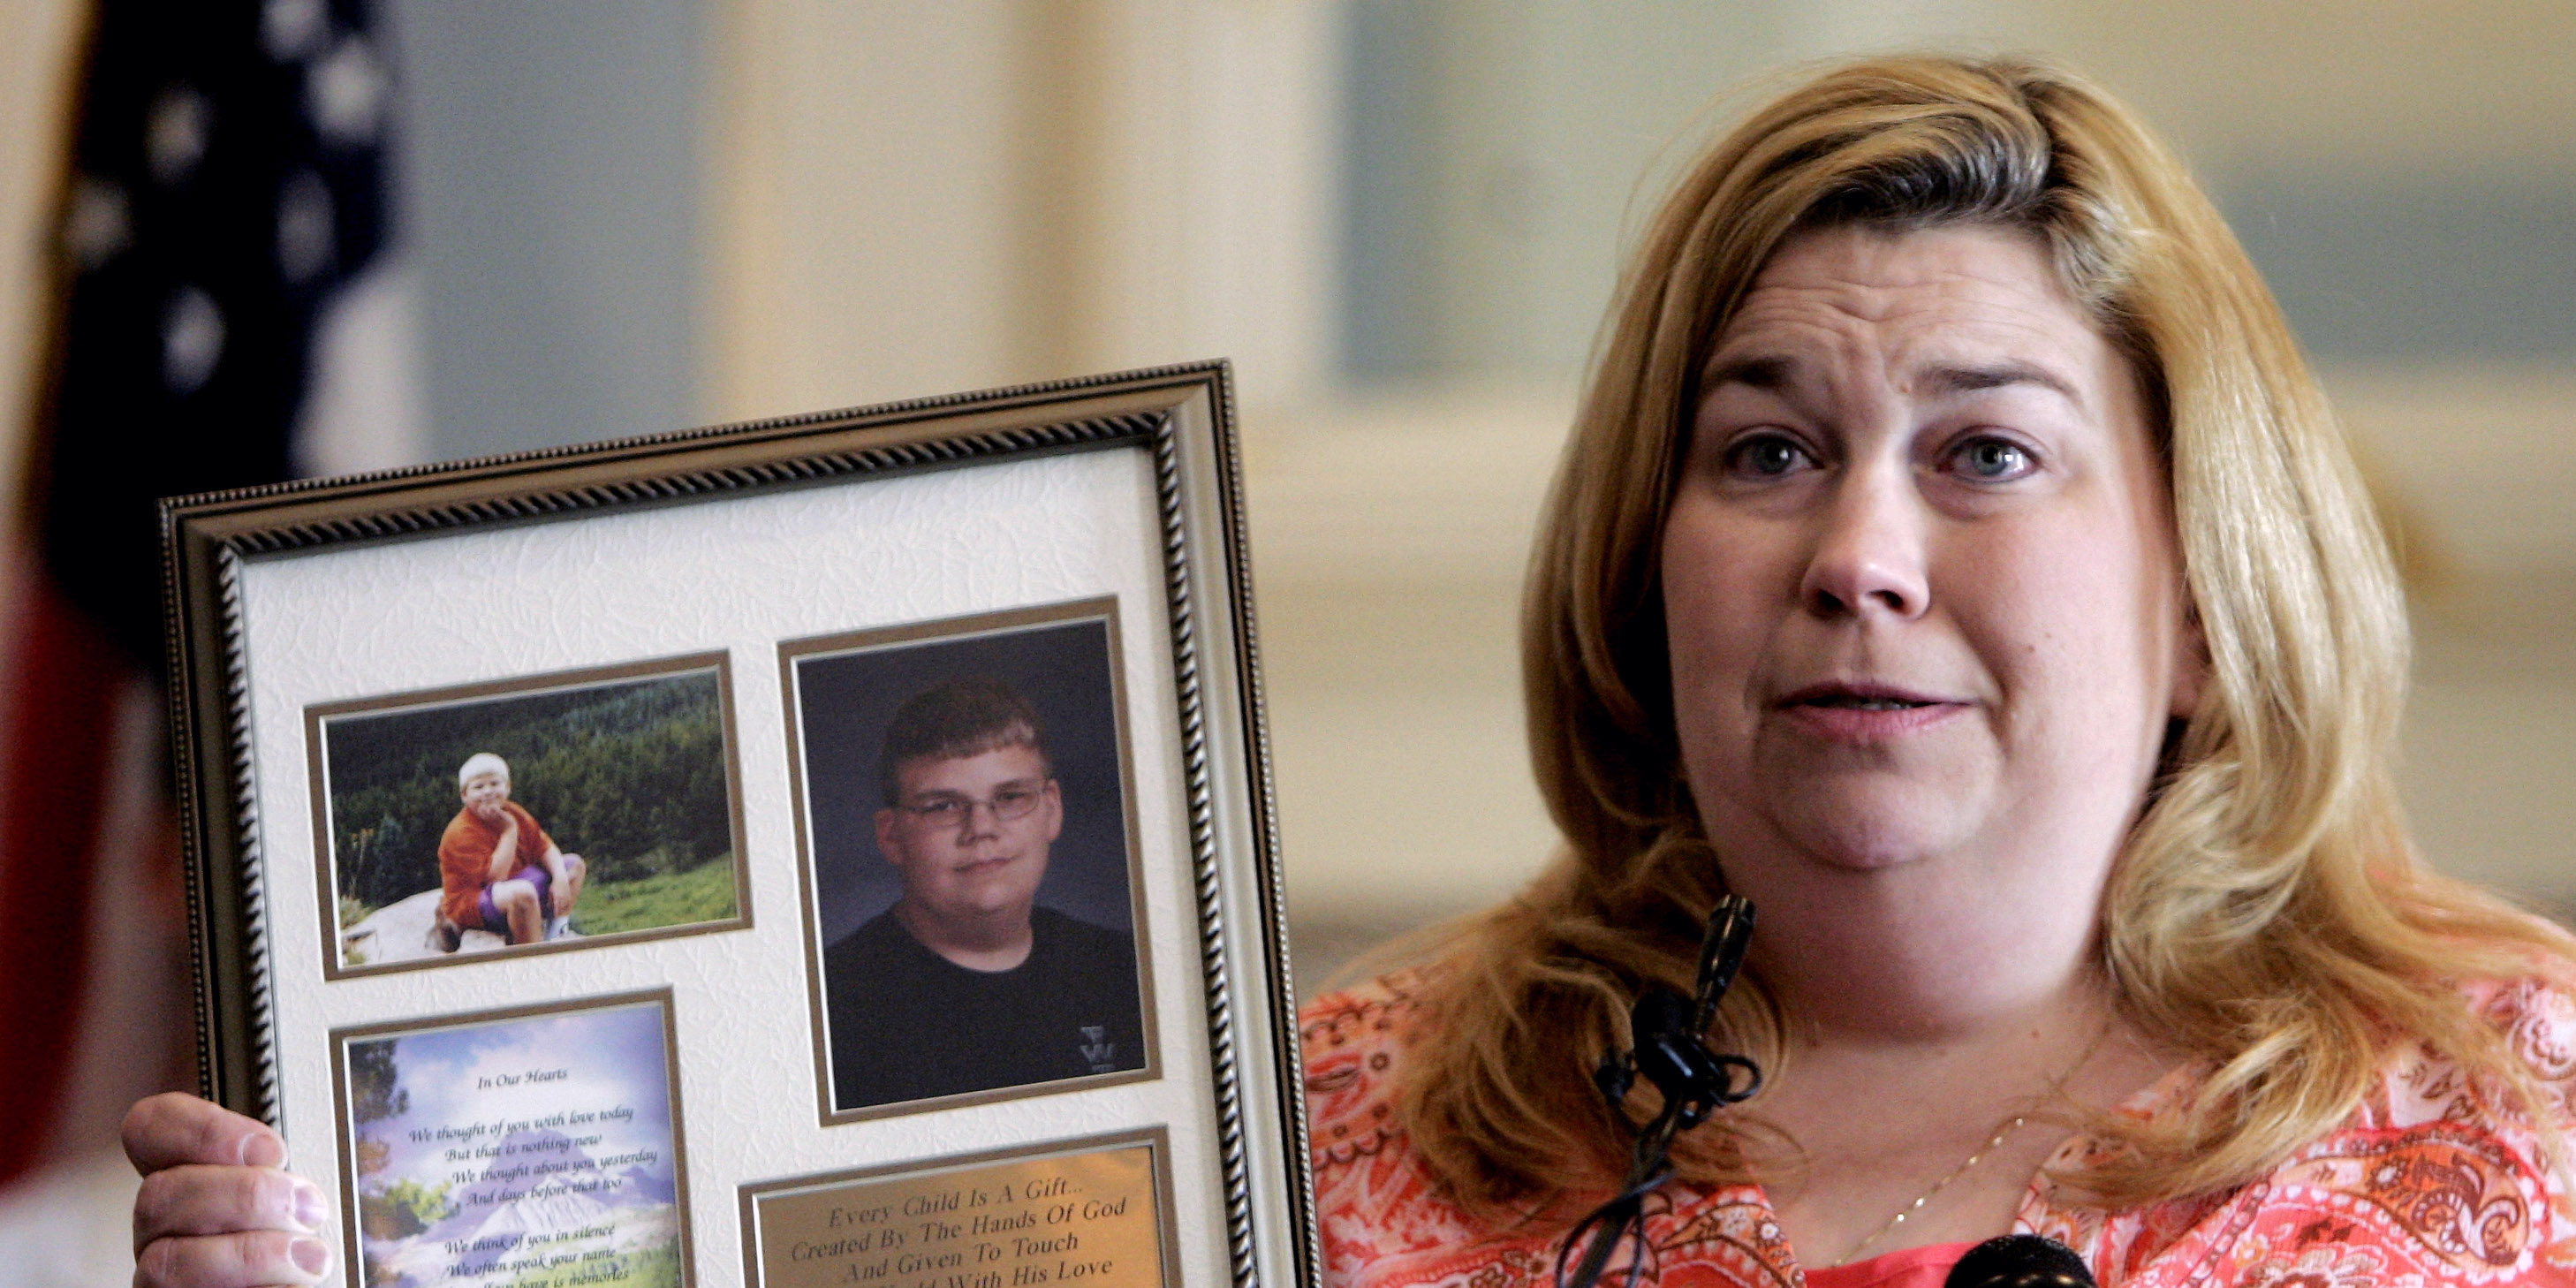 Tamra Weimer holds photos of her son, Andrew Weimer, who was 15 years old when he died from an ATV accident,  during a news conference in Oklahoma City, Wednesday, May 10, 2006, called to discuss the Oklahoma Legislature's failure to pass a bill aimed at reducing deaths due to children riding all-terrain vehicles. (AP Photo)